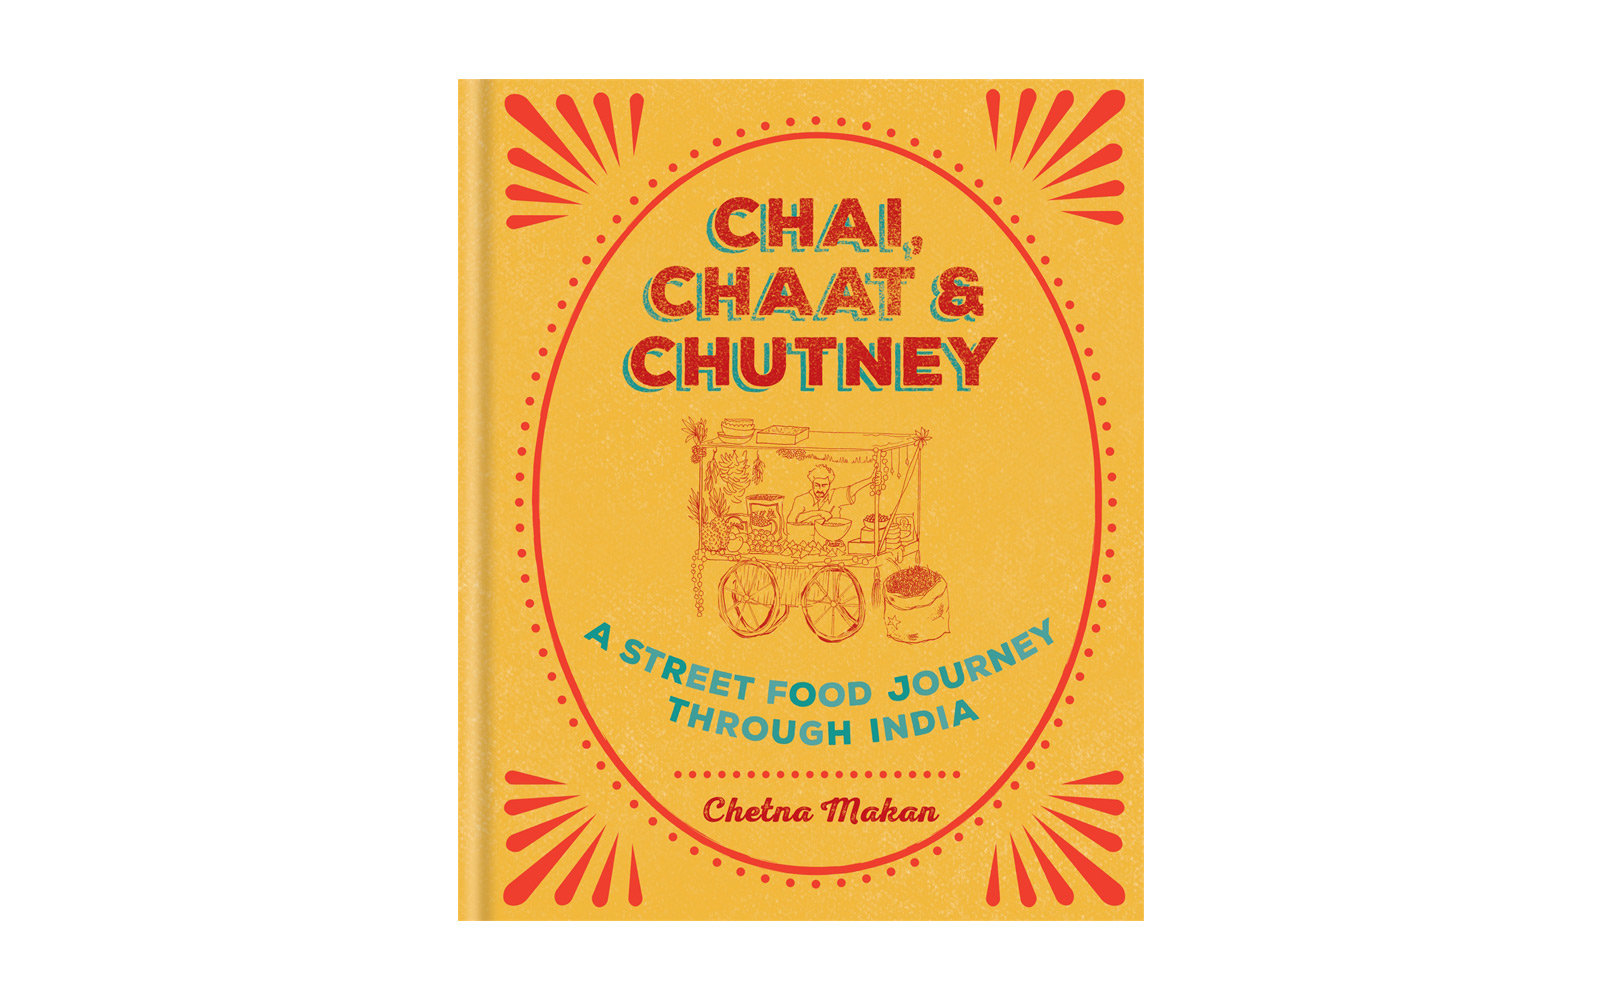 Chai, Chaat, and Chutney, by Chetna Makan